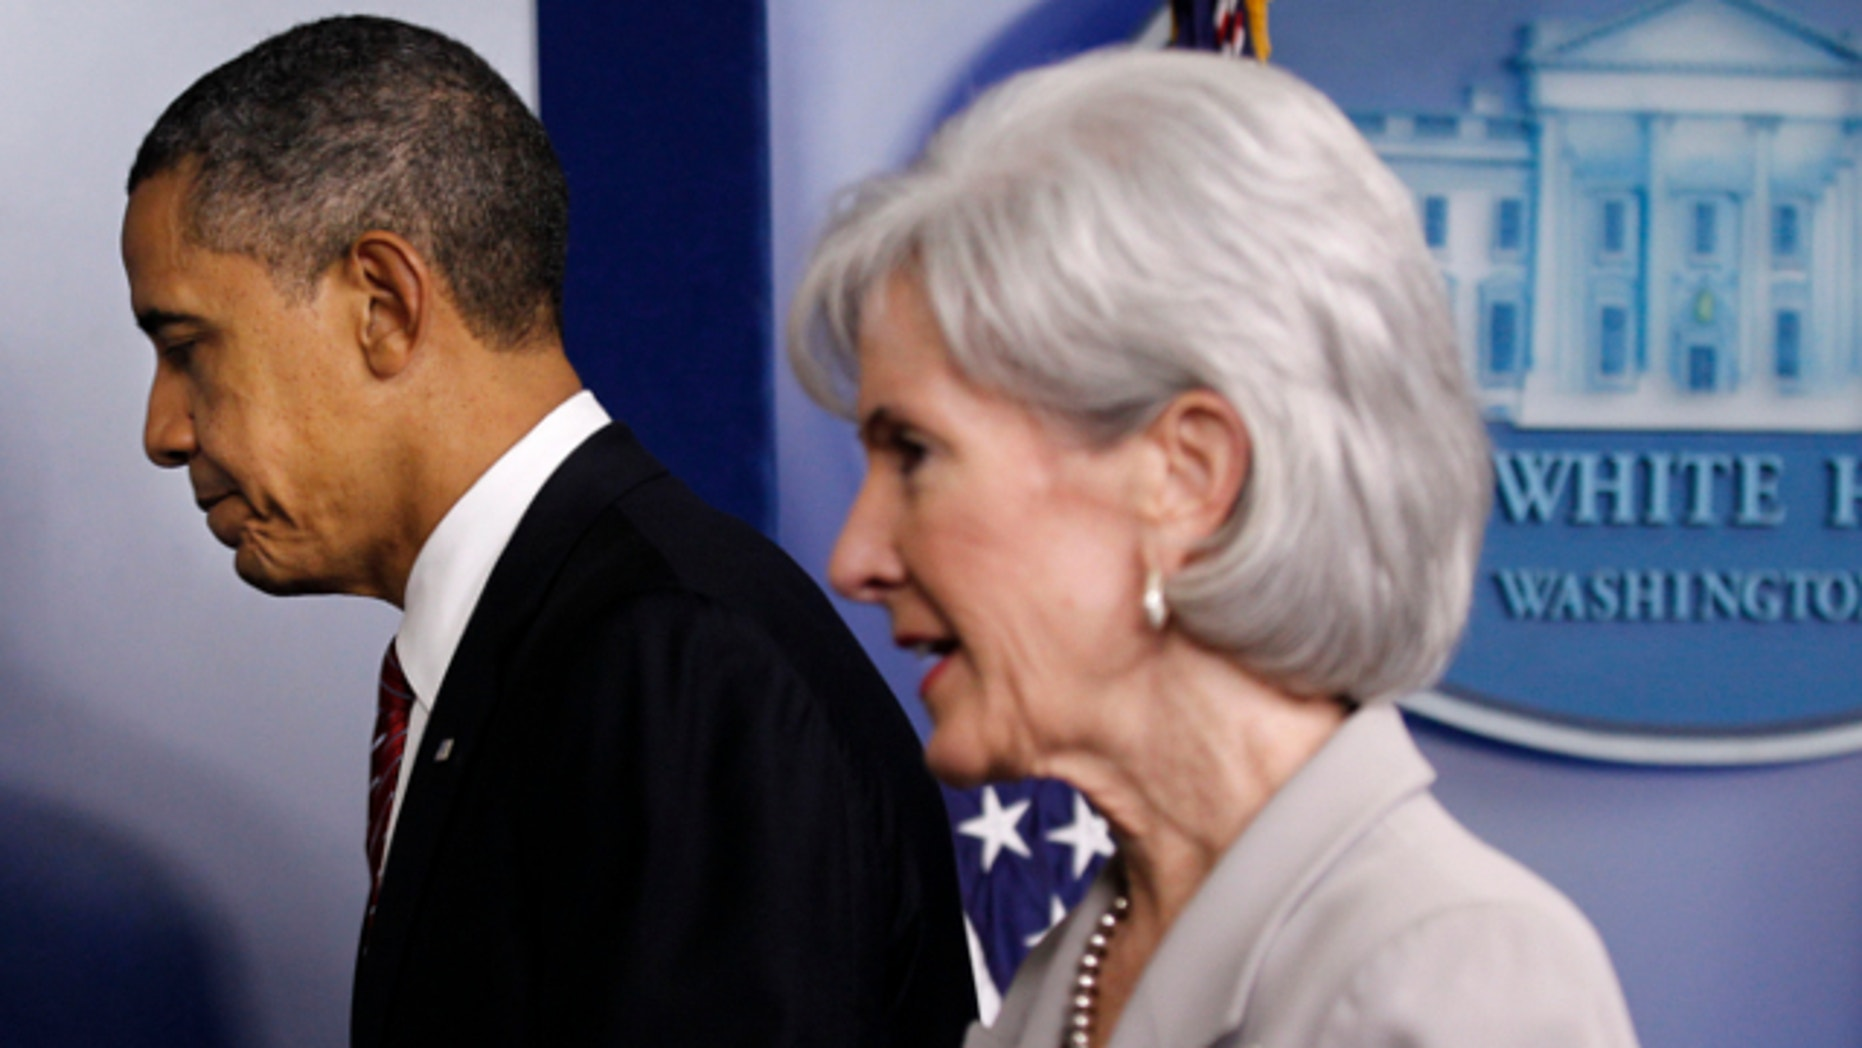 Feb. 10, 2012: President Obama and Health and Human Services Secretary Kathleen Sebelius leave the Brady Press Briefing Room of the White House in Washington.